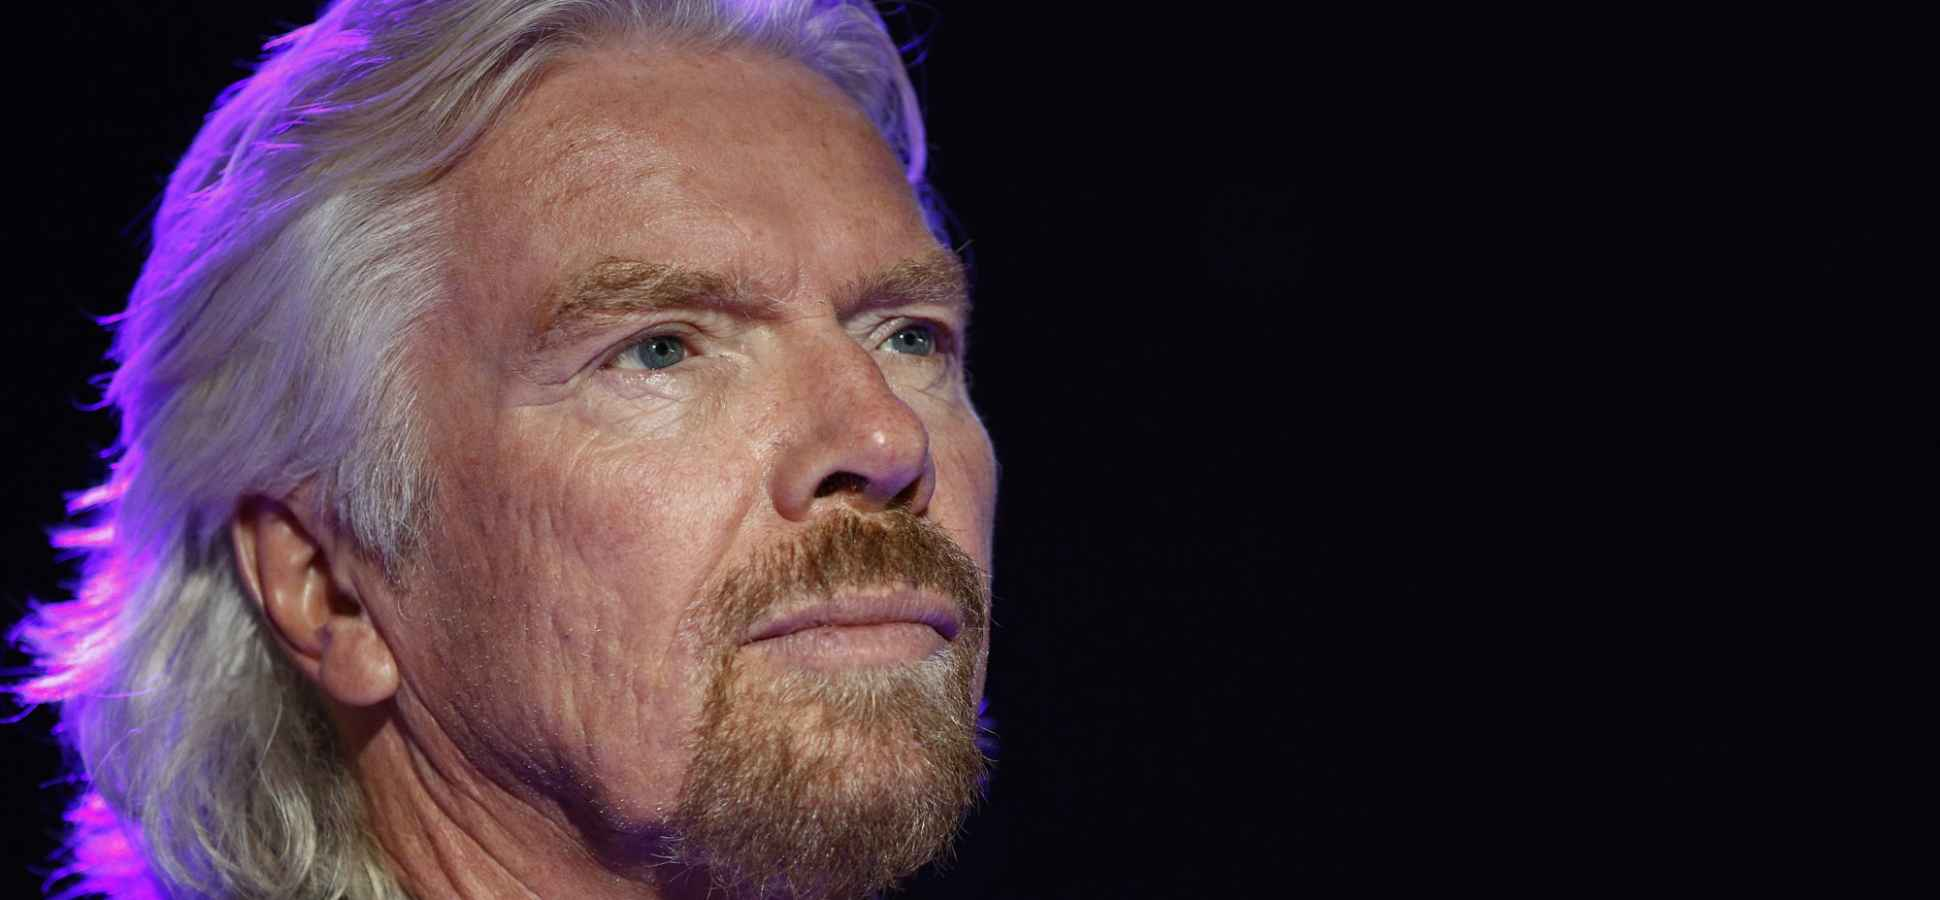 8 Traits That Oprah Winfrey, Richard Branson, and Other Extremely Successful Leaders Have